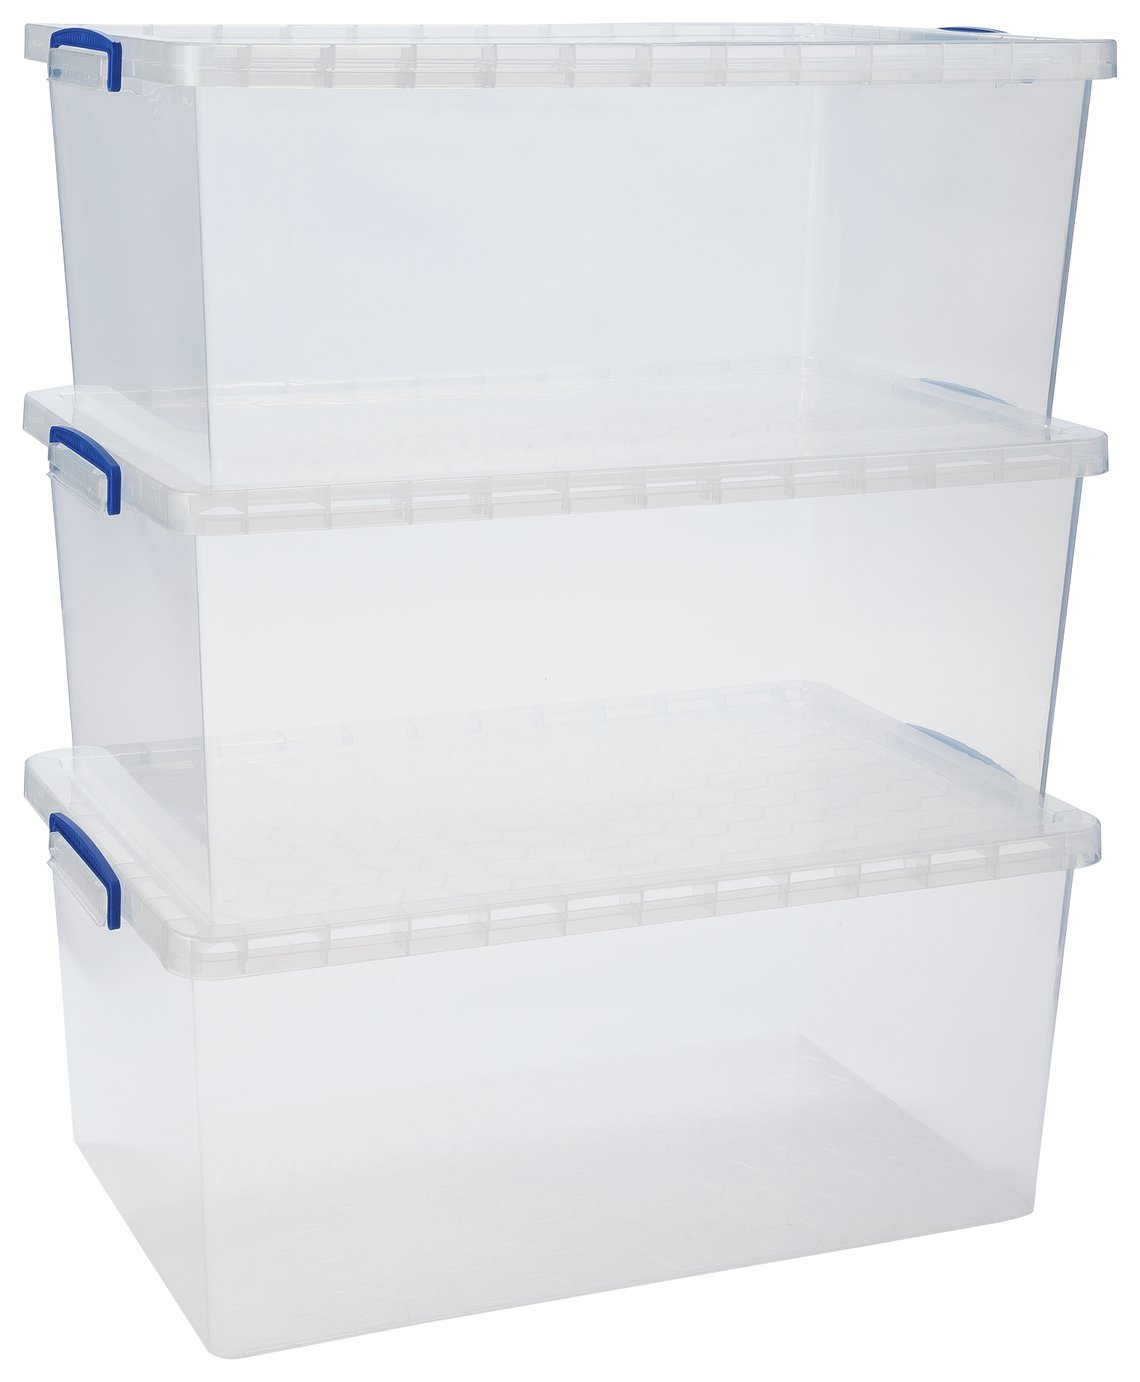 Really Useful 62 Litre Nesting Boxes - Set of 3